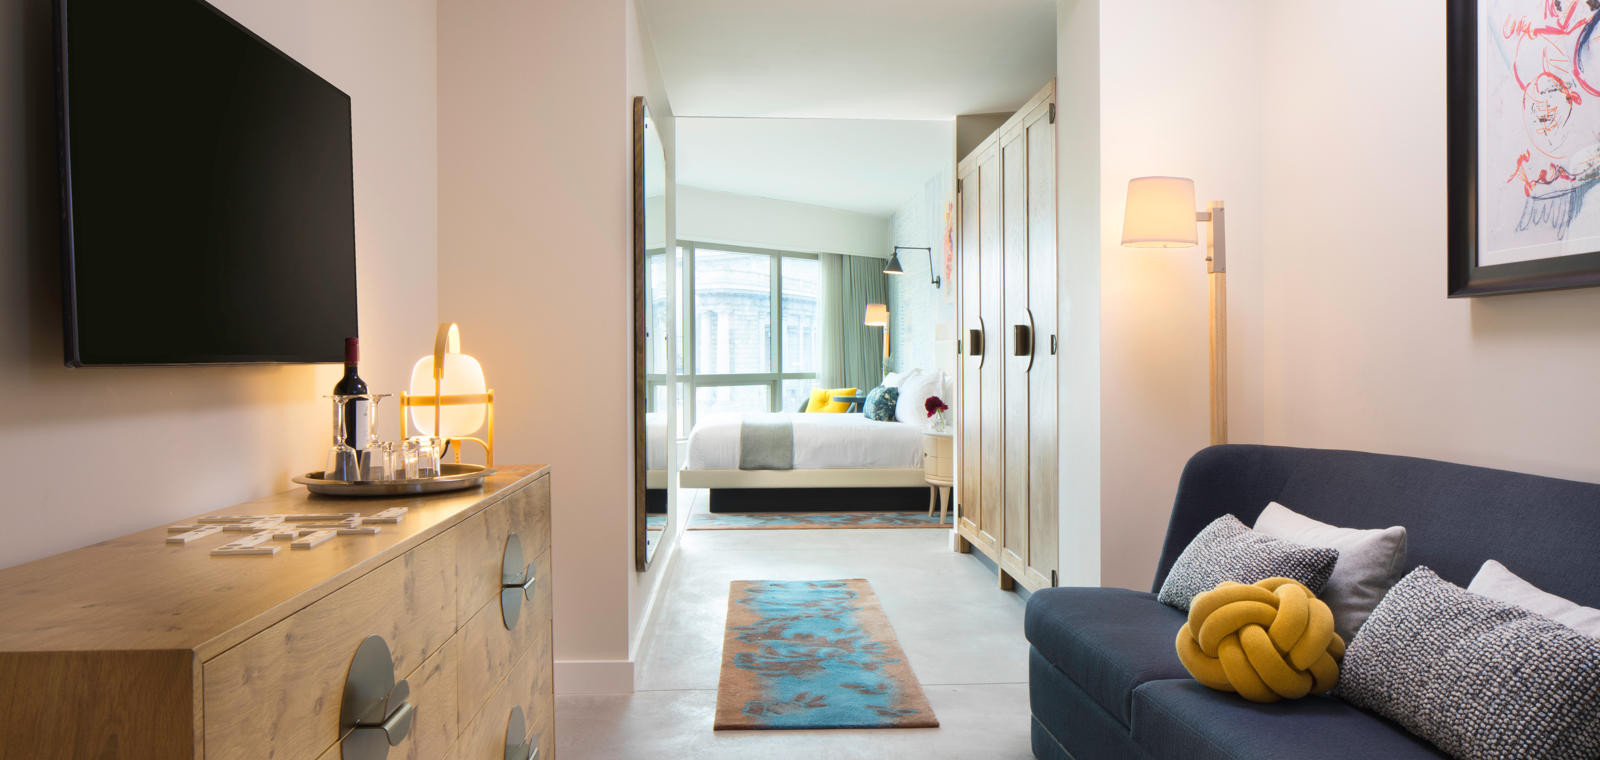 50bowery_kindredsuite_guestrooms